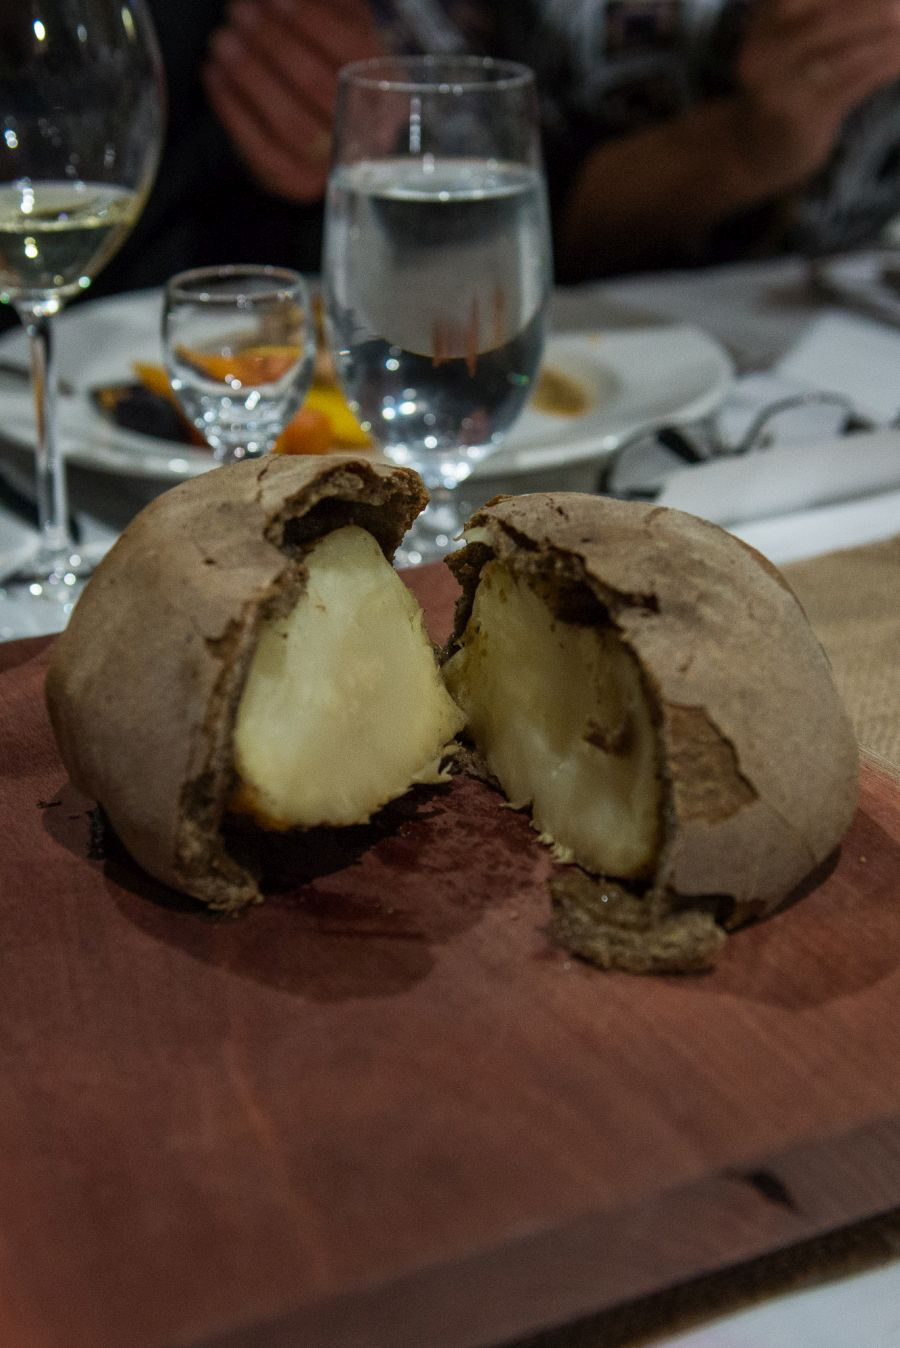 Celeriac baked in a salt crust